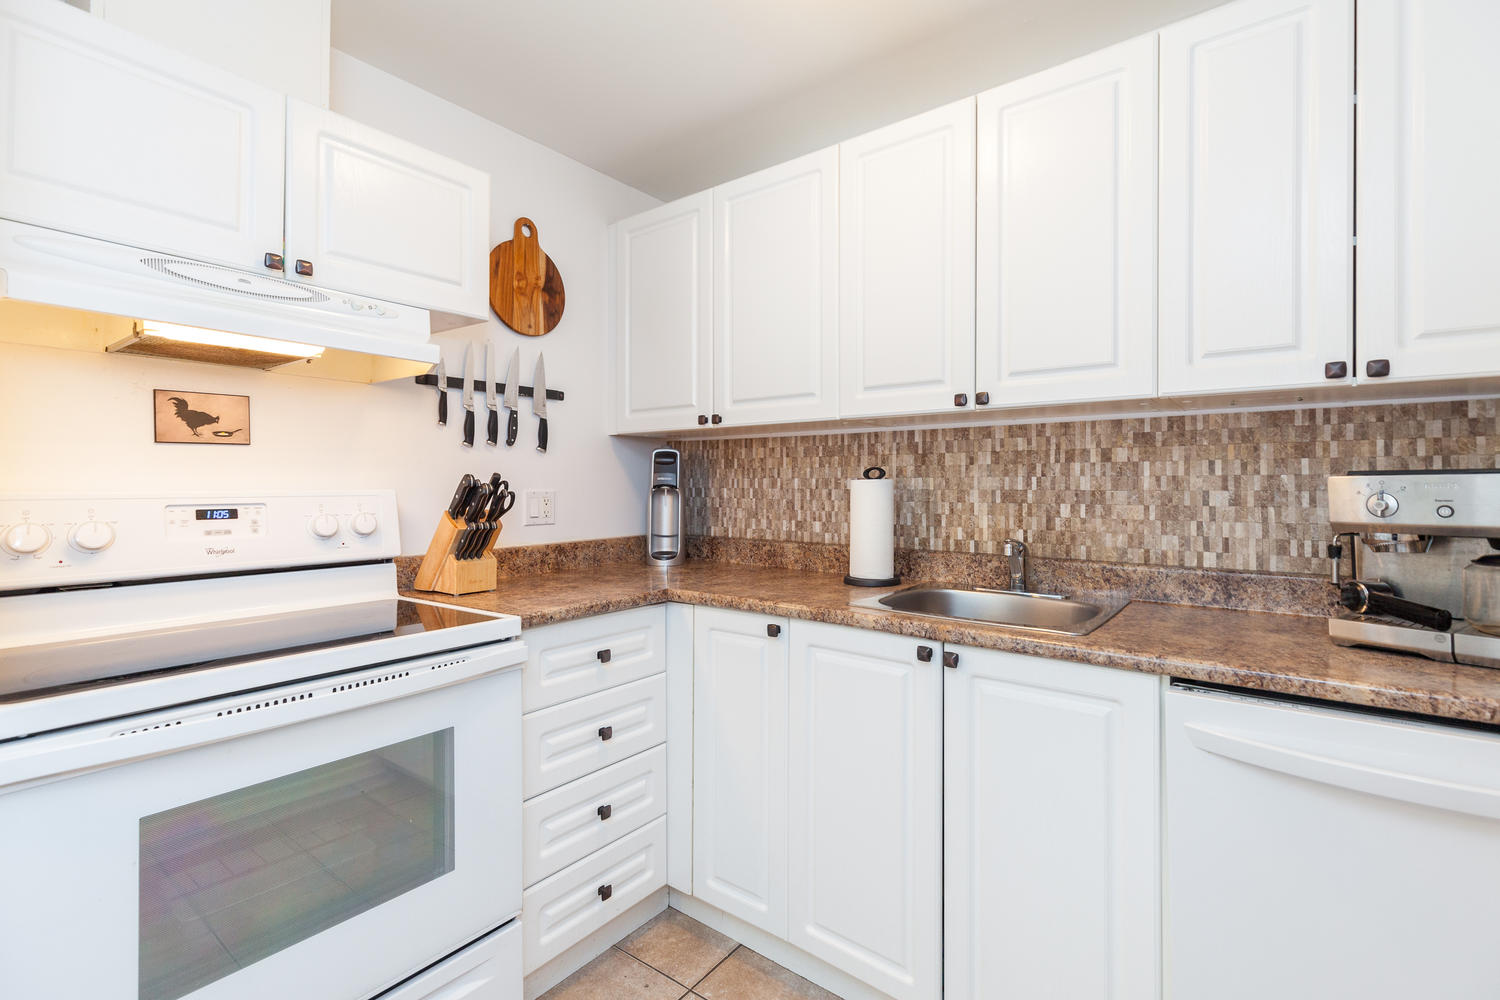 GREAT sized eat in kitchen.  Nicely updated, very bright, loads of storage space and ample counter space.  Sure to impress.